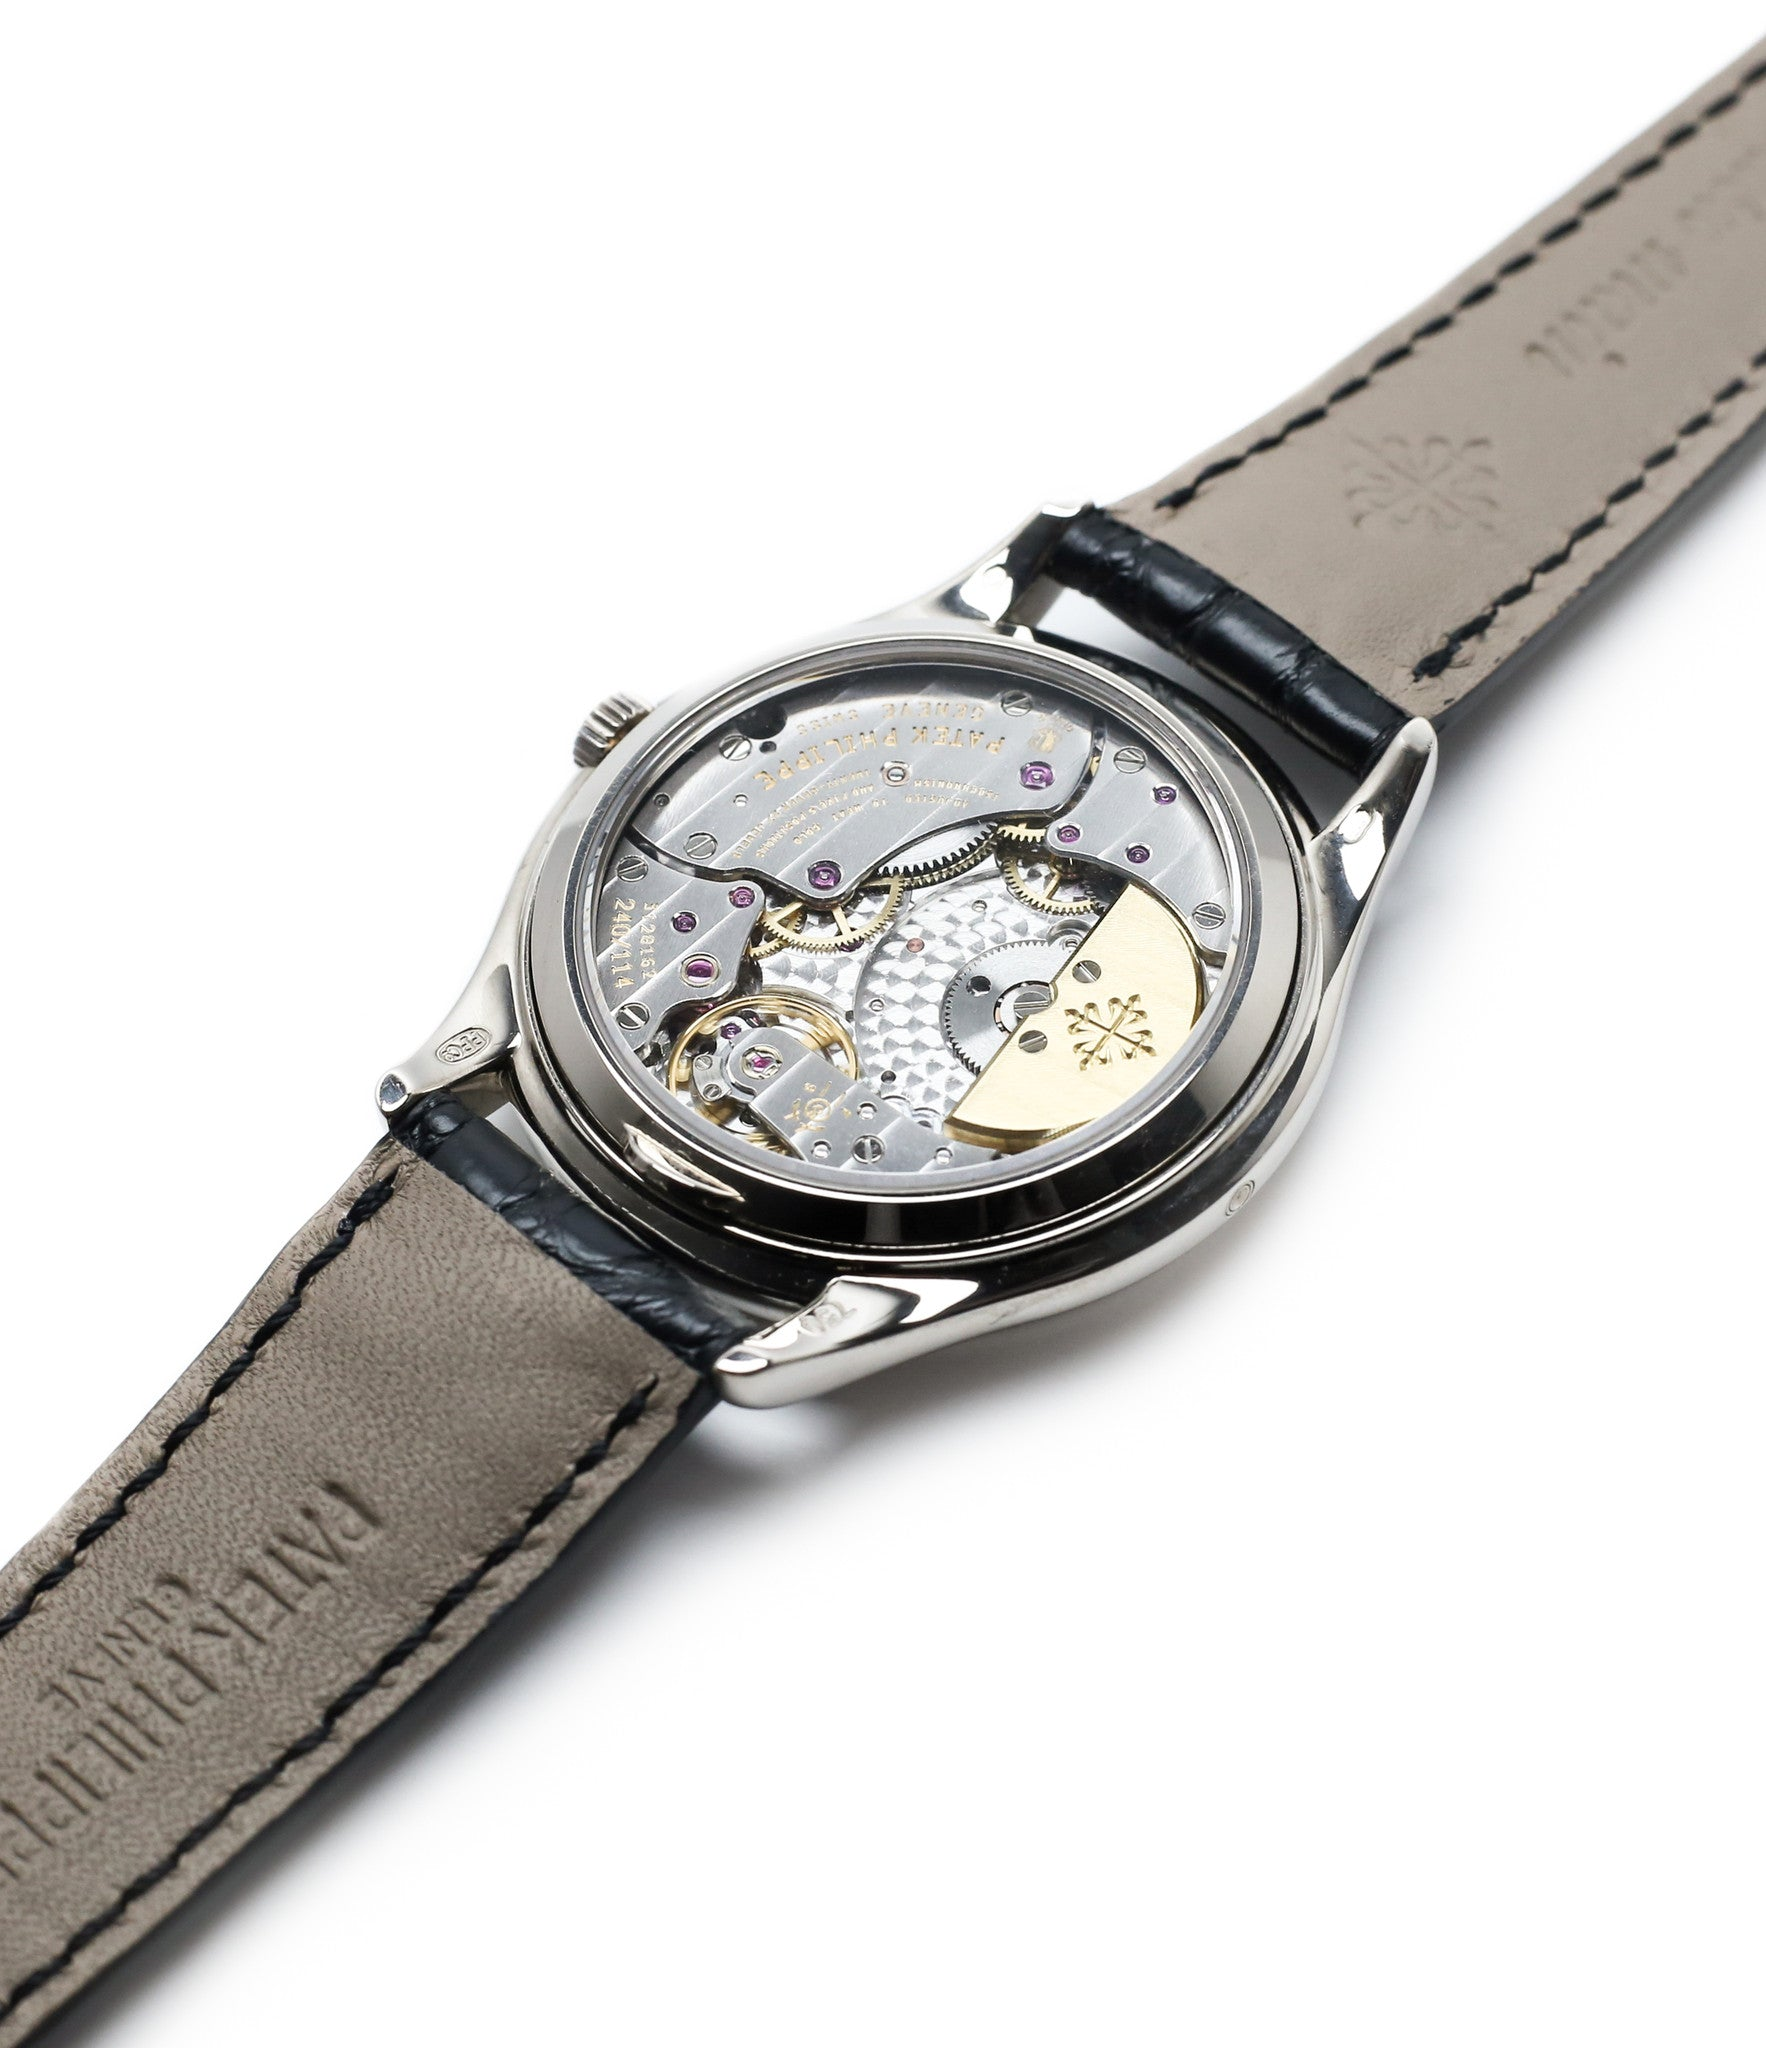 display back movement Patek Philippe Perpetual Calendar 3940G moonphase white gold watch full set at A Collected Man